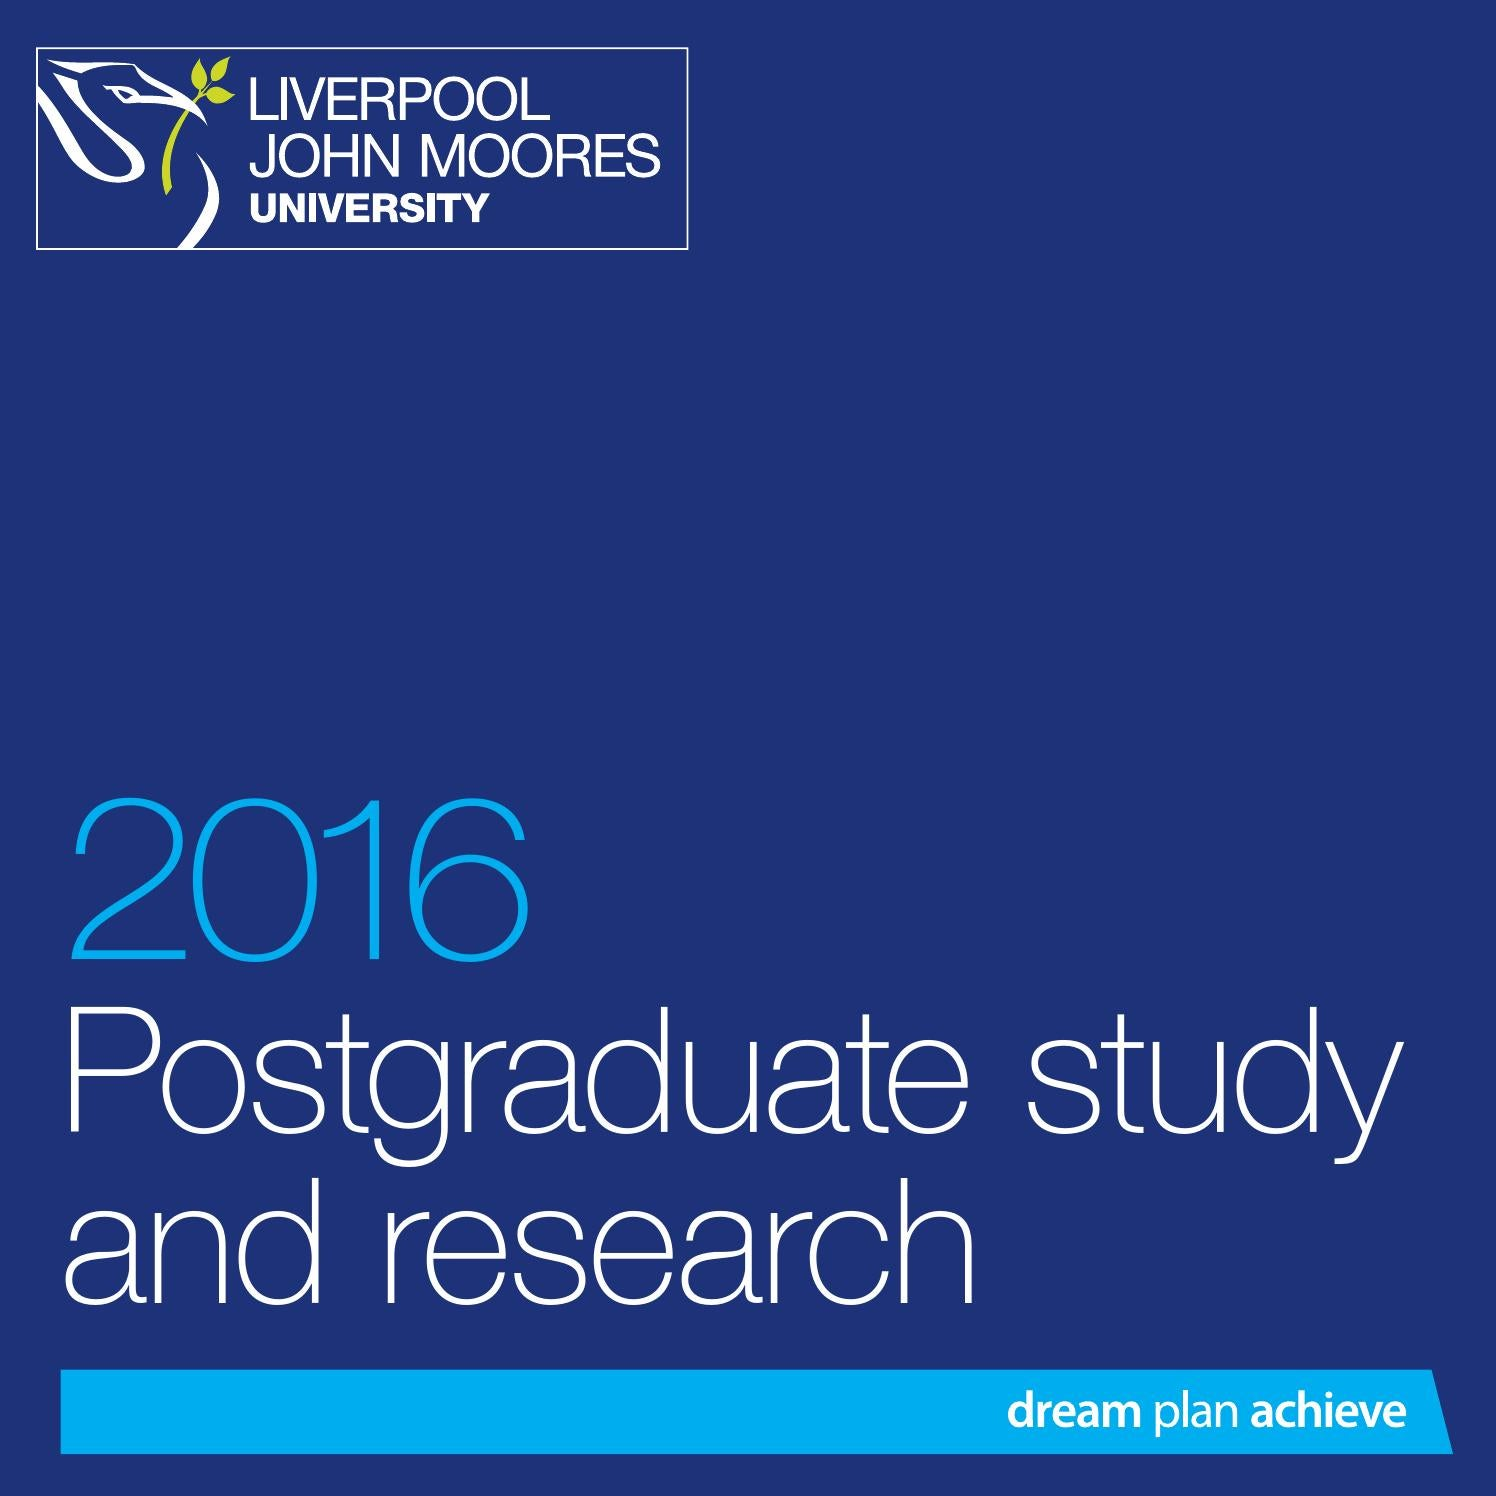 Postgraduate prospectus 2017 by the university of winchester issuu postgraduate study and research prospectus 2016 fandeluxe Choice Image